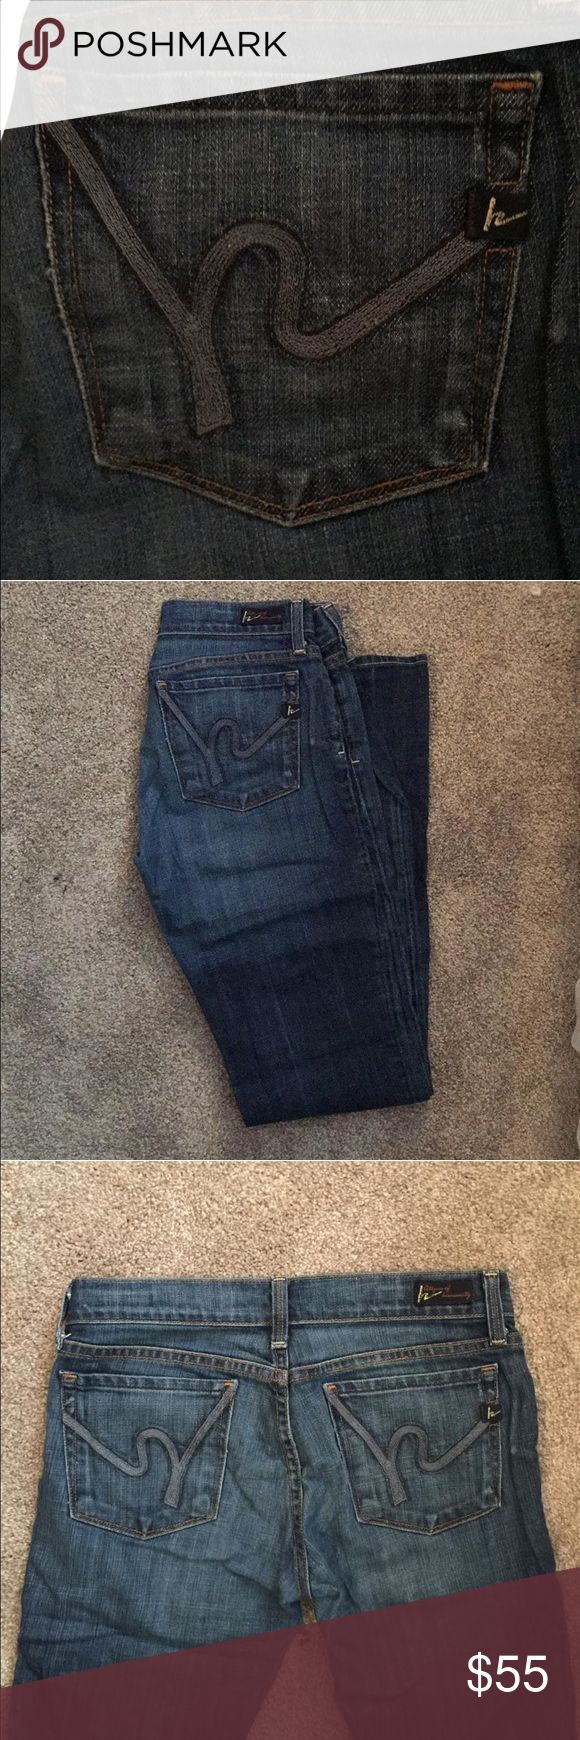 Citizens of Humanity Jeans Citizens of Humanity Jeans - Margo #085 Boot Cut Size 26 Citizens of Humanity Jeans Boot Cut